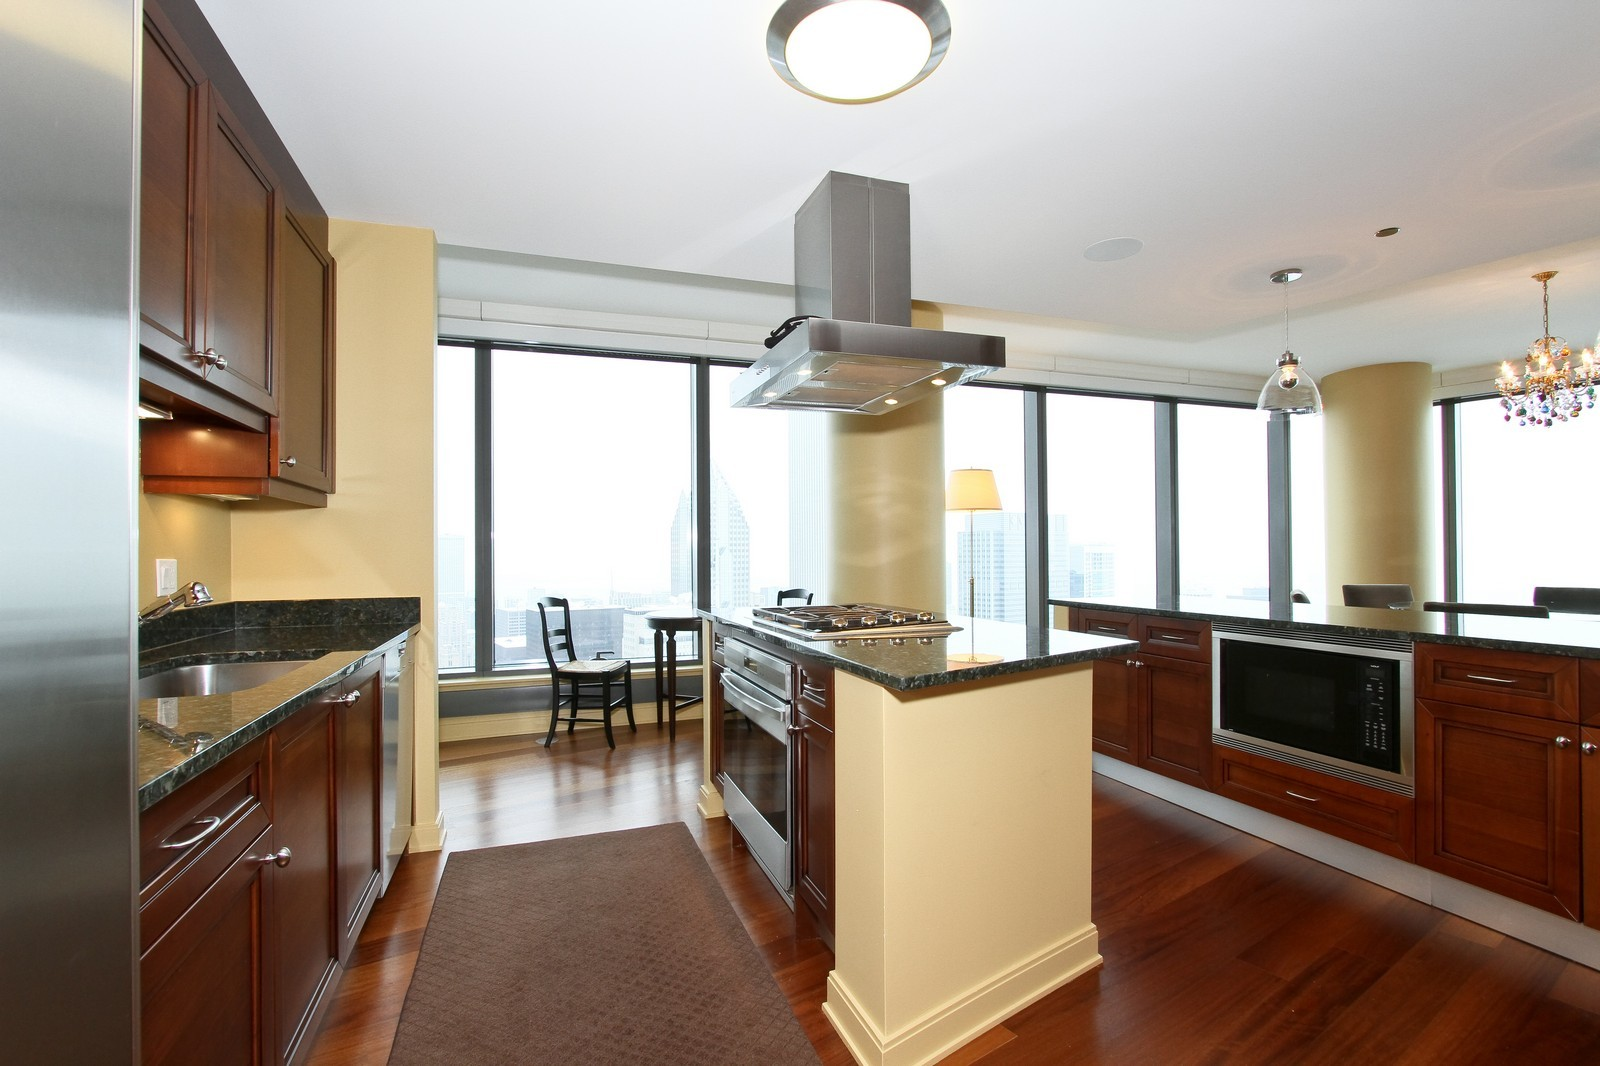 Real Estate Photography - 60 E Monroe, 6501, Chicago, IL, 60603 - Kitchen